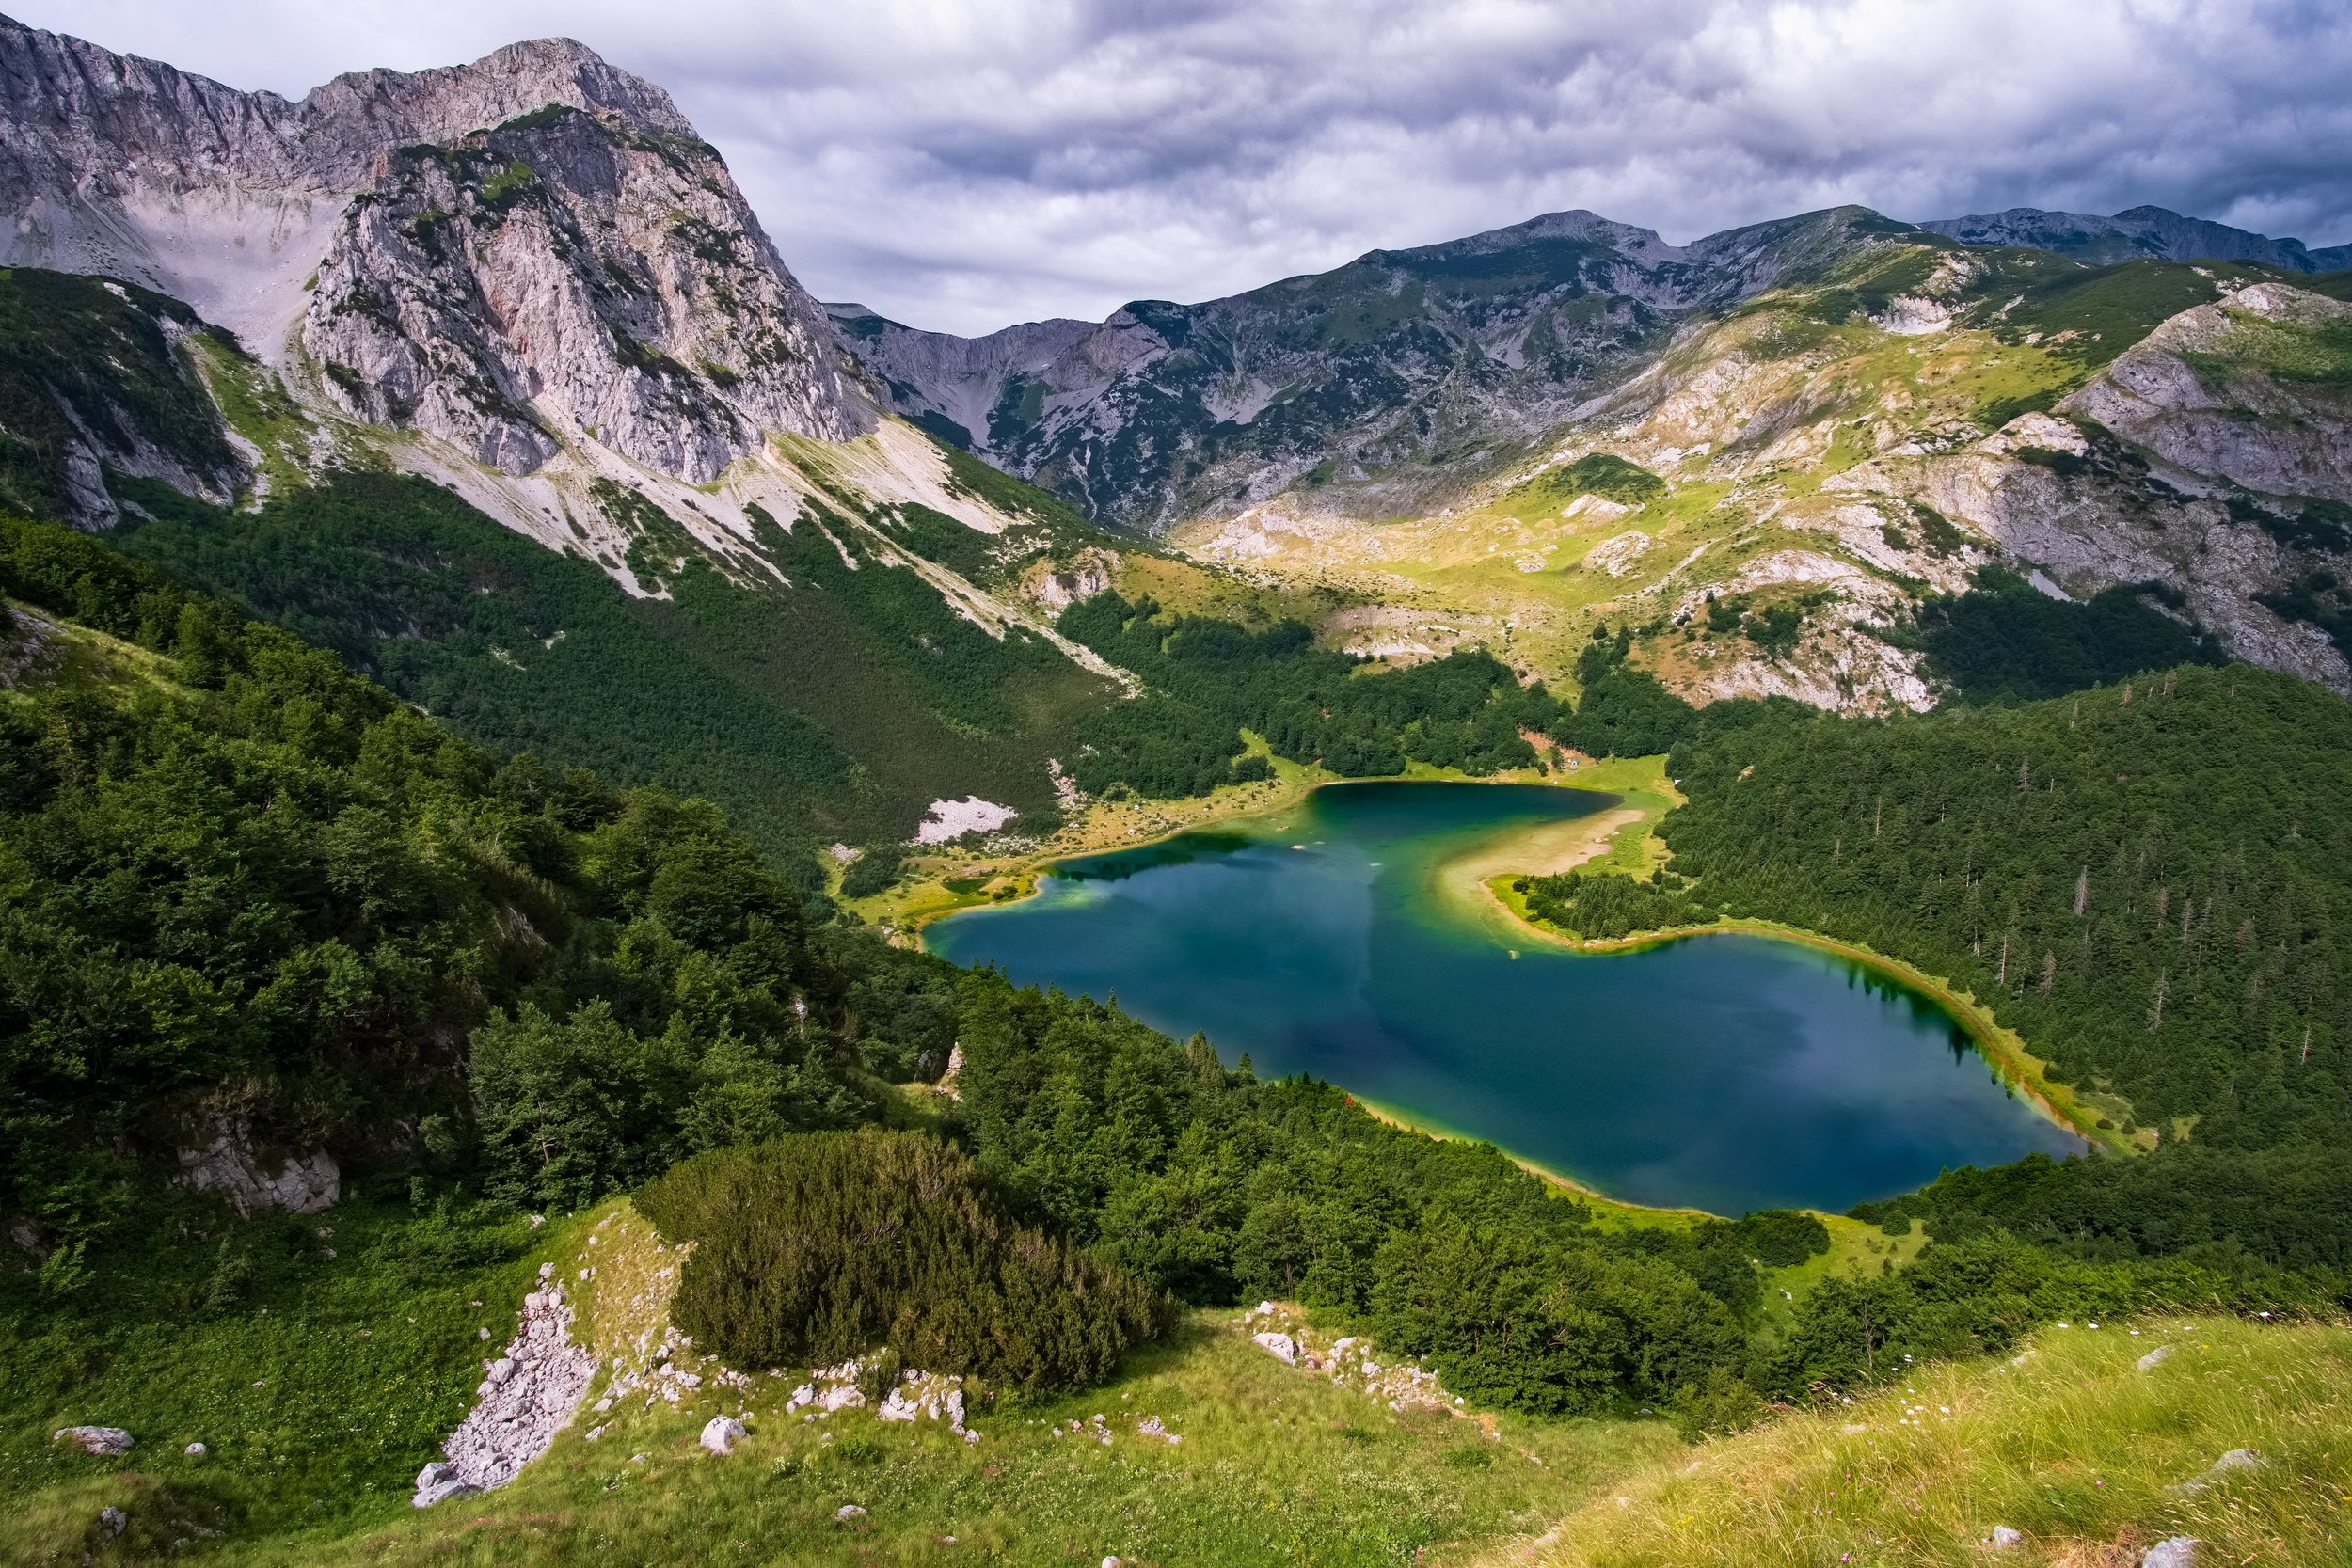 lake piva montenegro with forested mountains surrounding the water